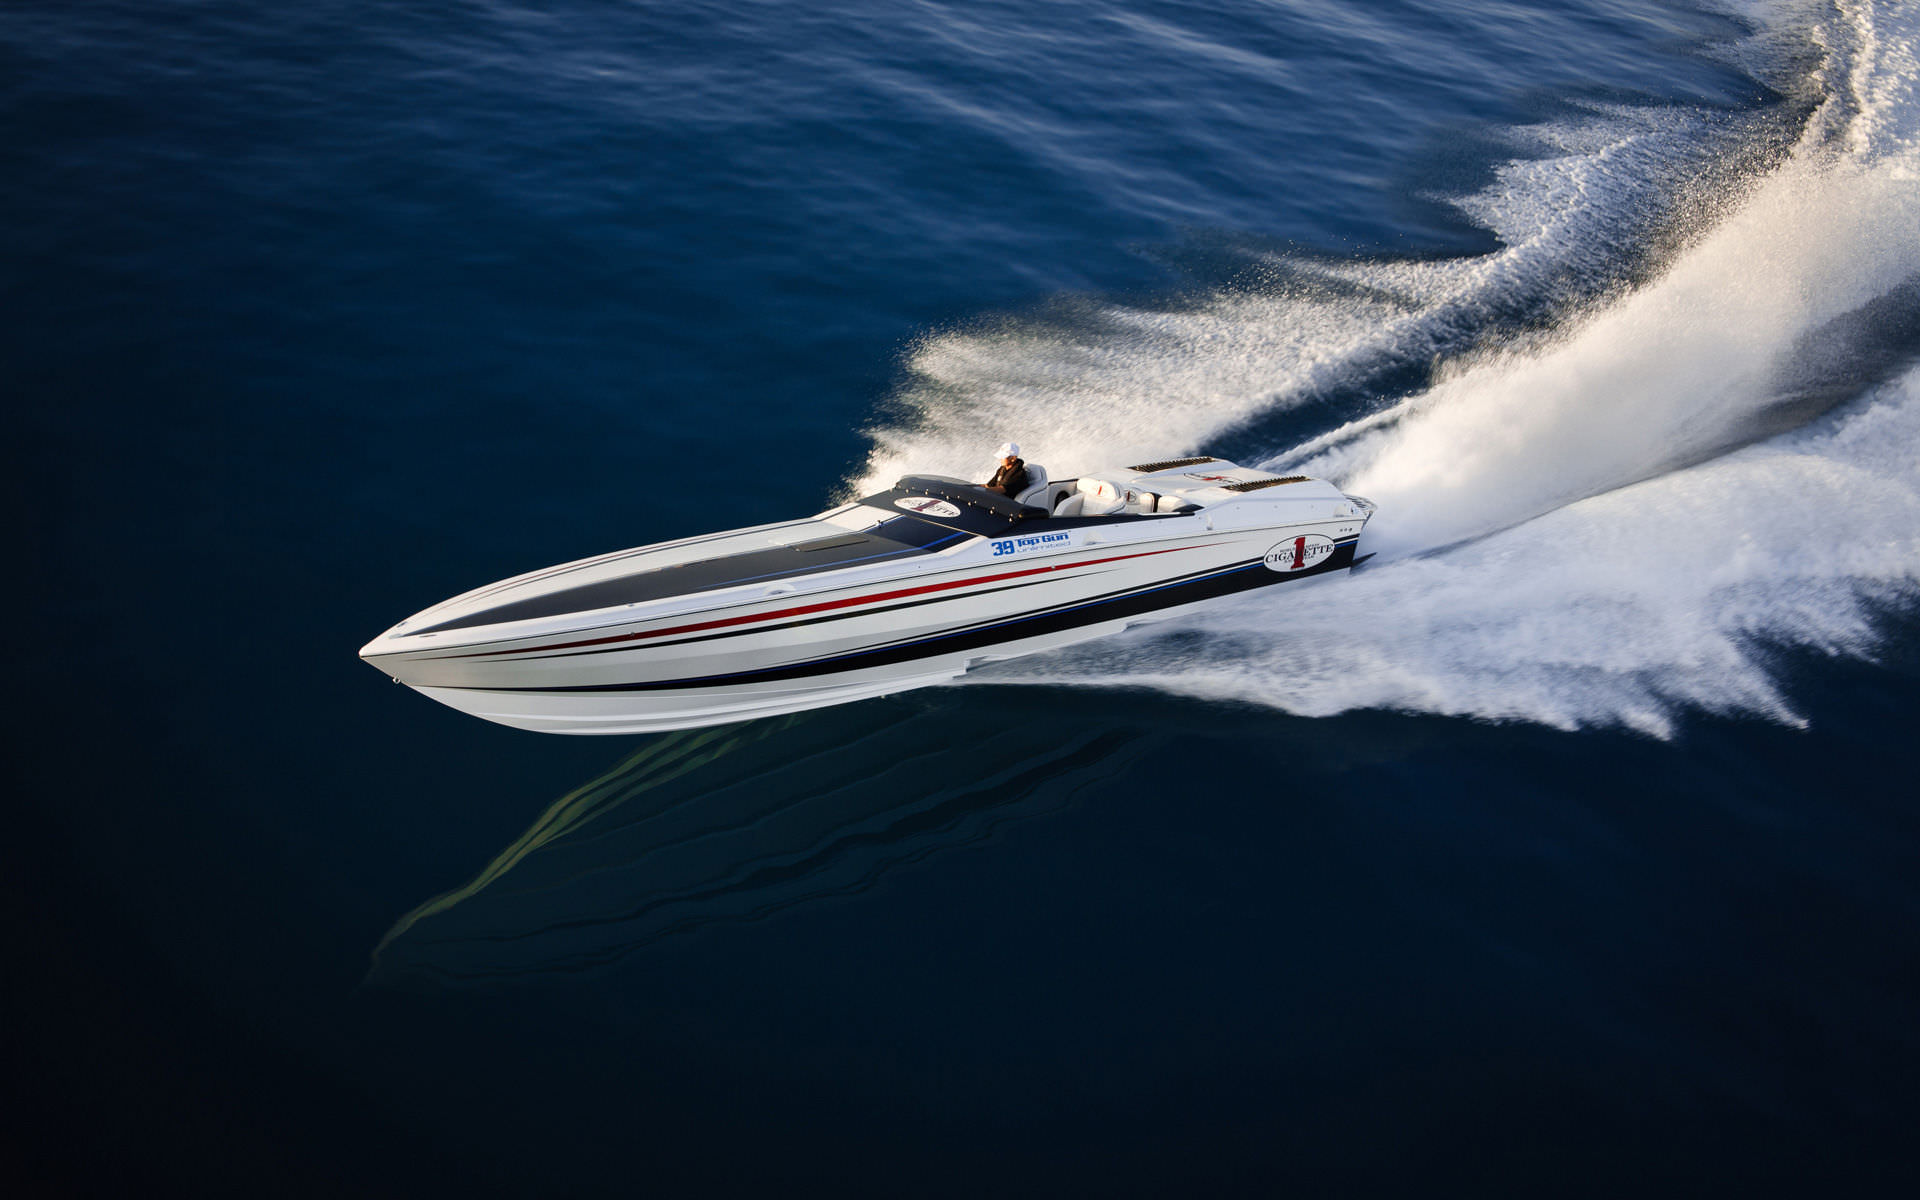 Speed Boat Desktop Wallpaper 50998 1920x1200 px 1920x1200